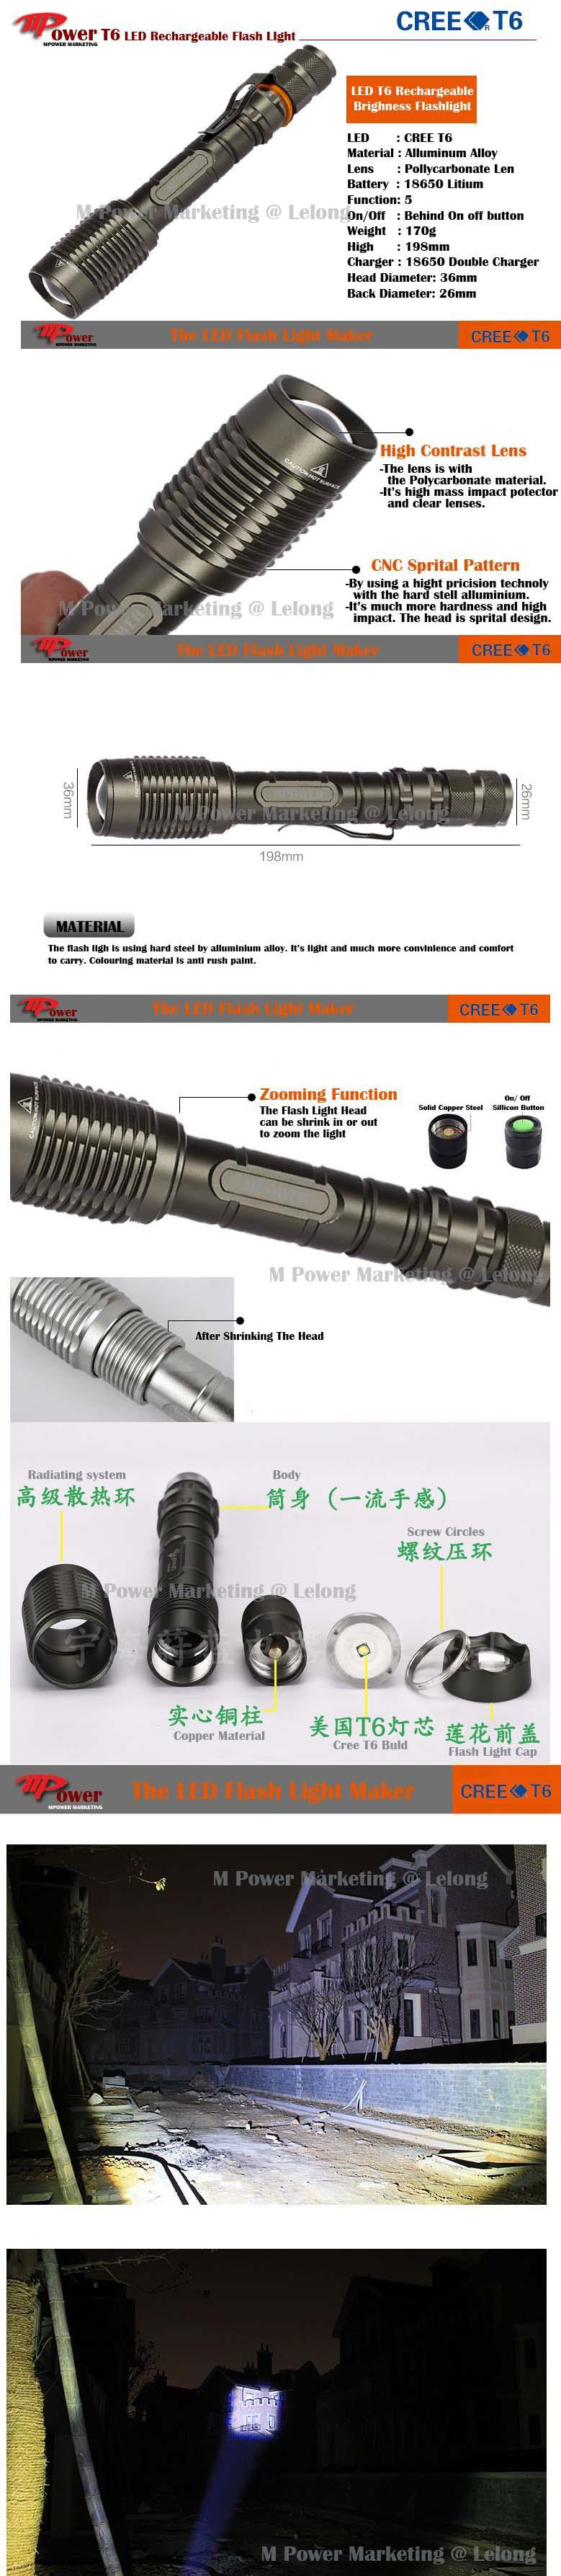 LED Flashlight Torchlight Zoomable Waterproof Torch Light-SKU T01